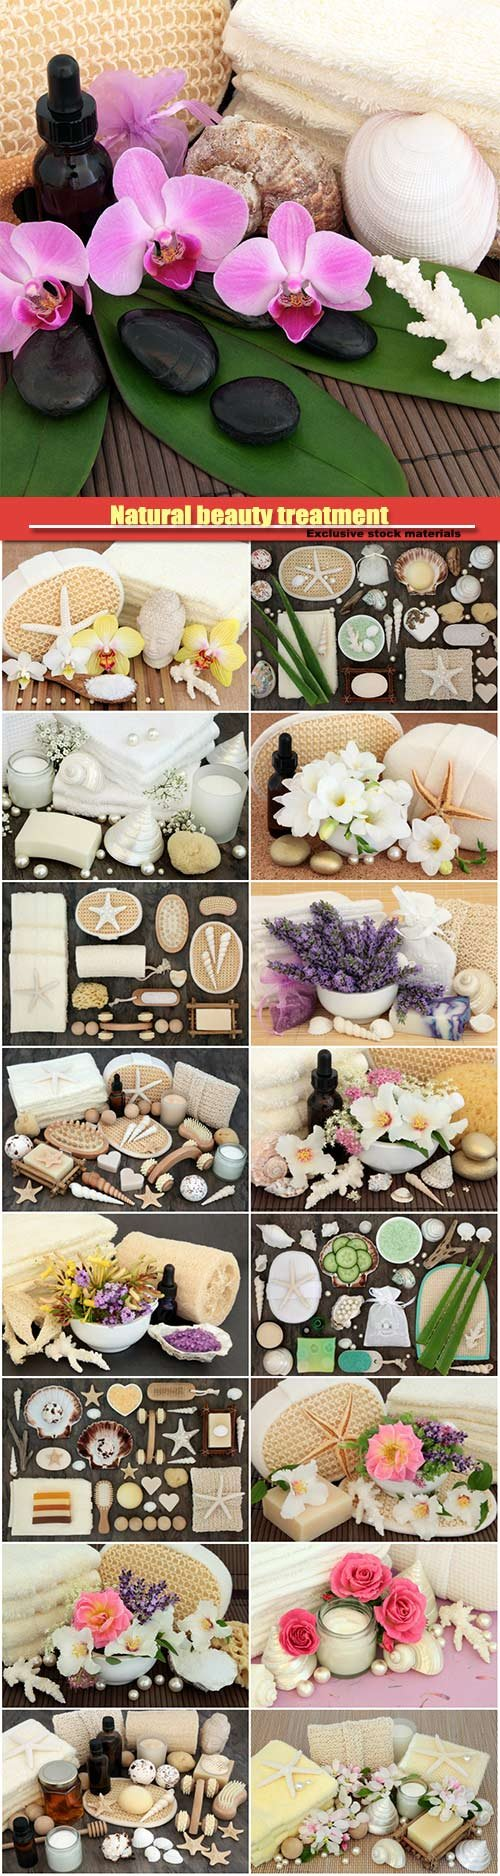 Natural beauty treatment, spa massage accessories, lavender and honeysuckle